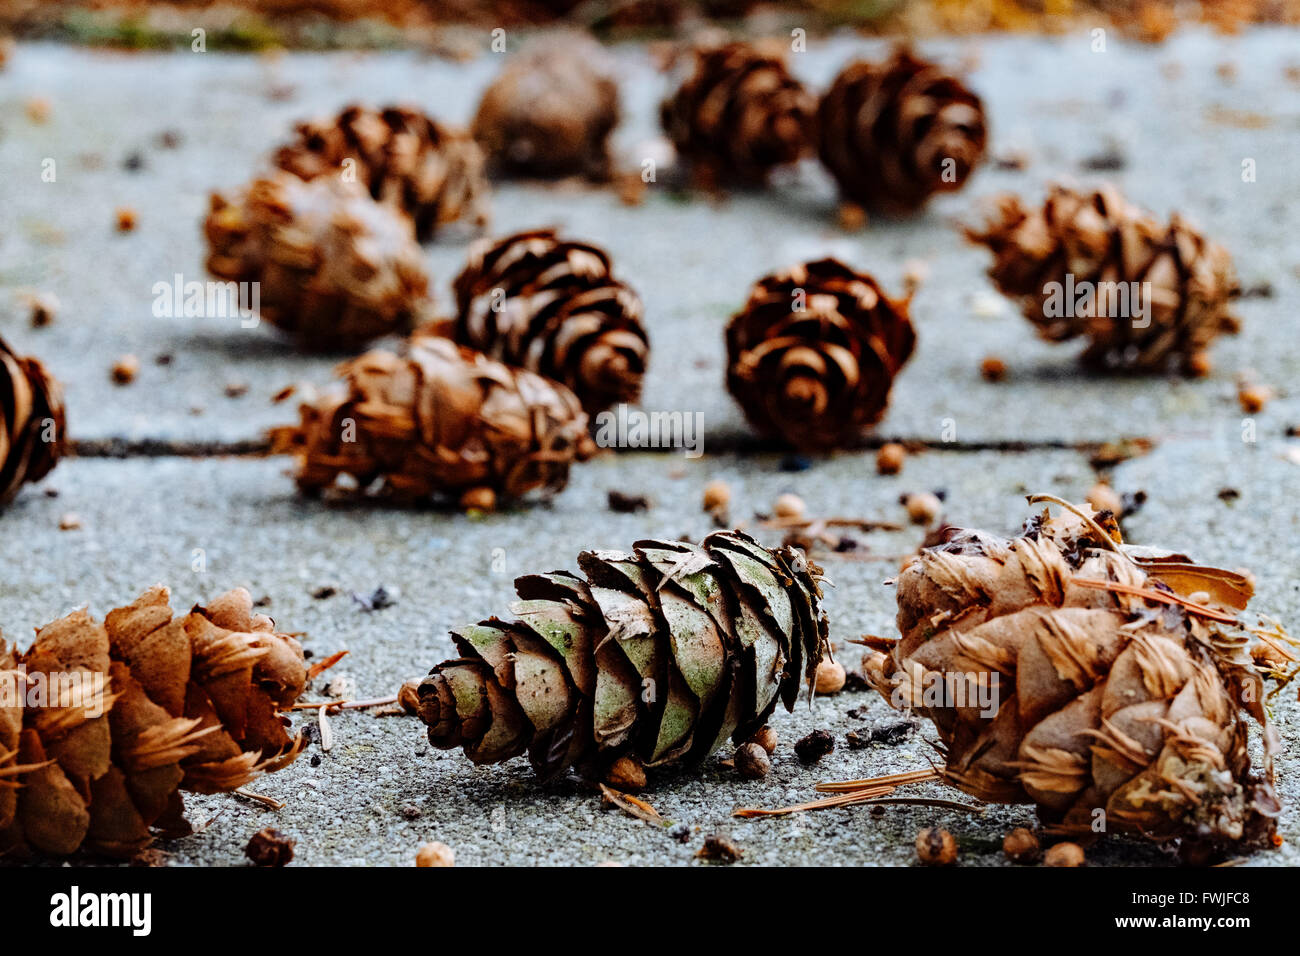 Close-Up Of Pine Cones On Surface - Stock Image